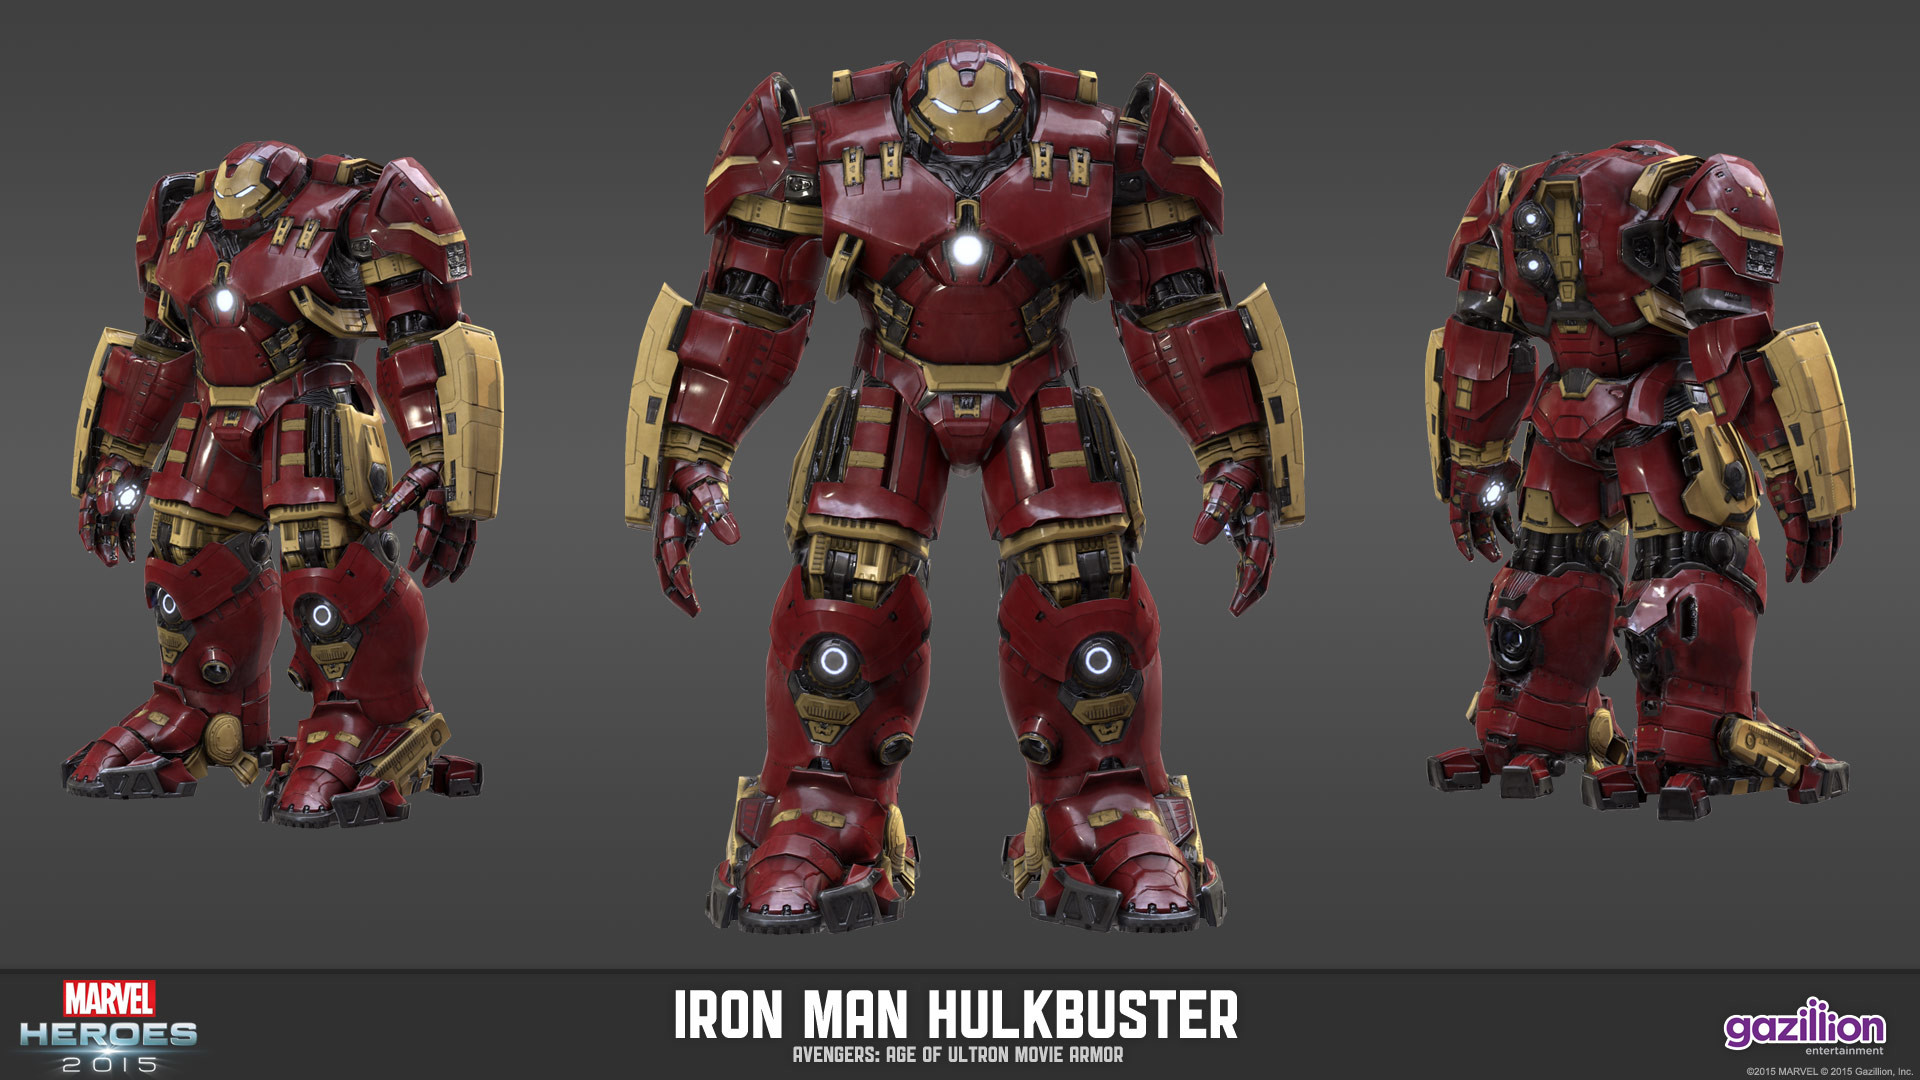 When is New Hulkbuster?